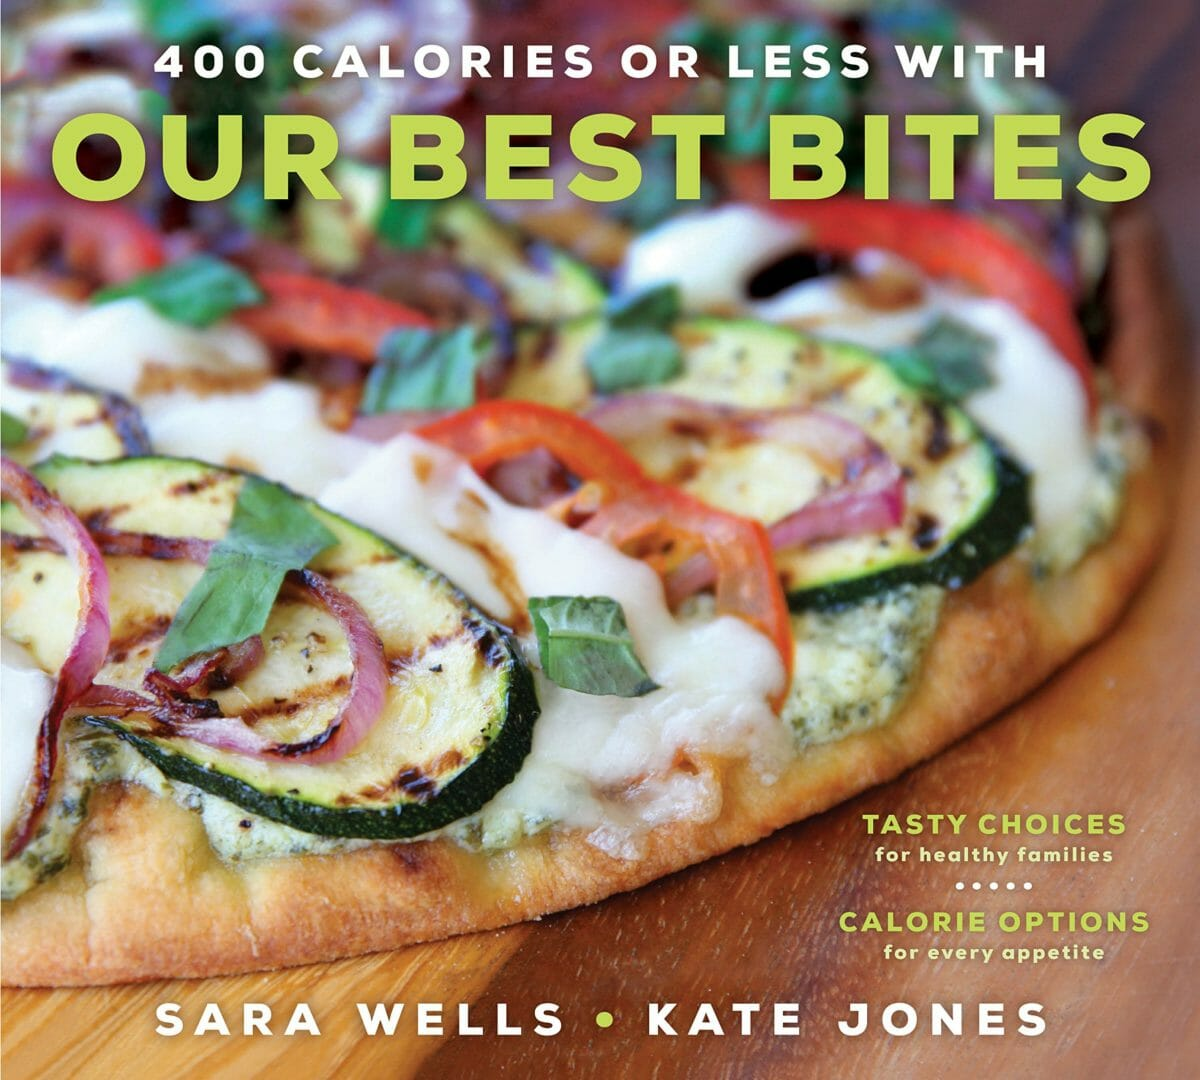 New Our Best Bites Book: 400 Calories or Less!